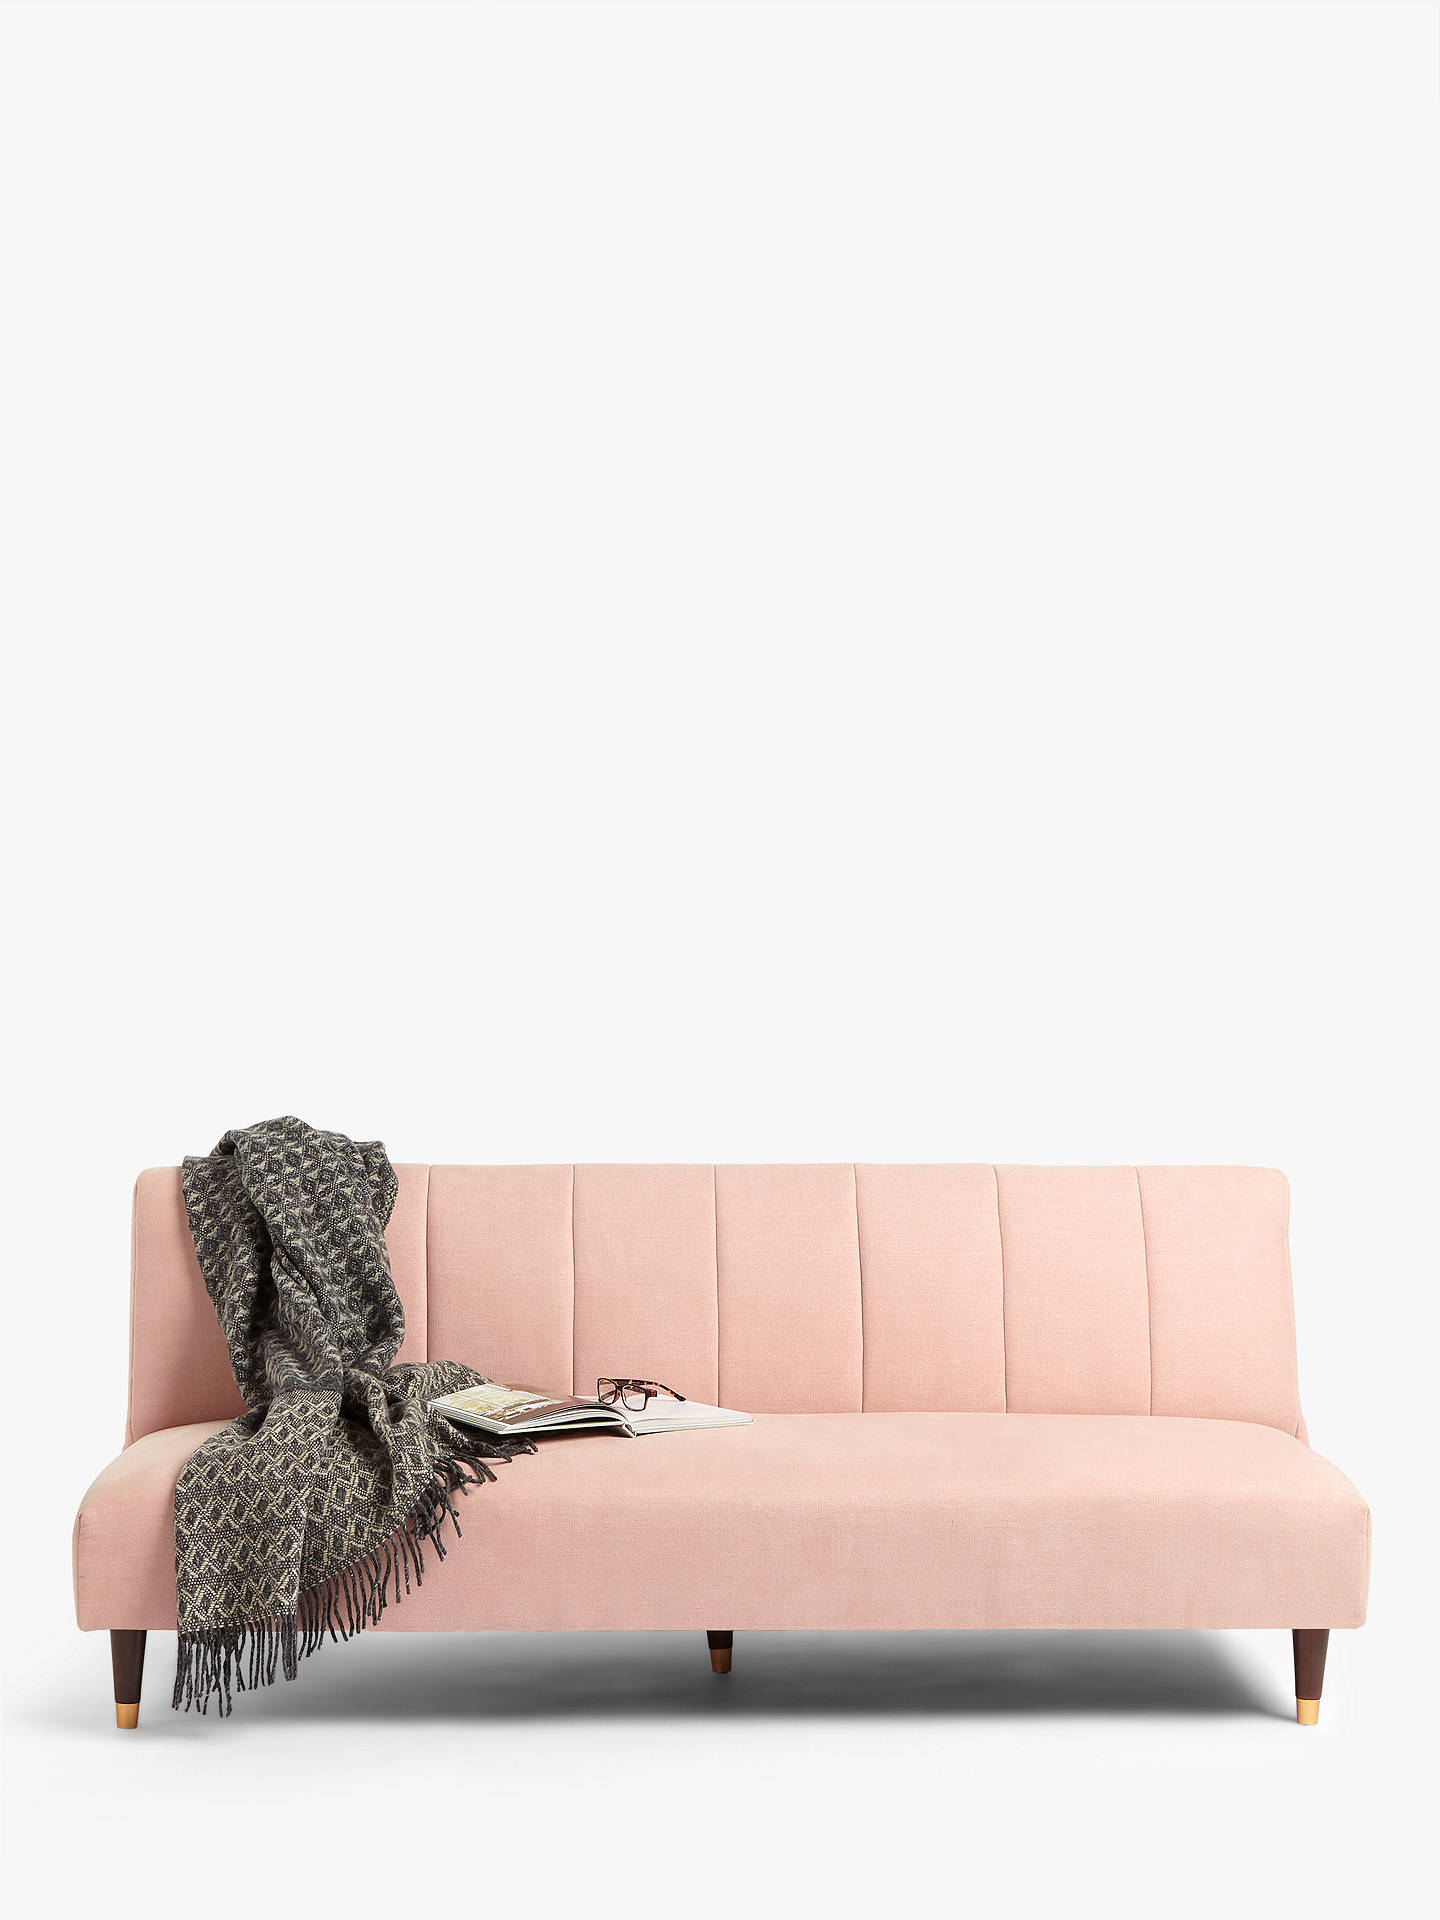 Buy John Lewis & Partners Fluted Medium 2 Seater Sofa Bed, Dark Leg, Hatton Soft Pink Online at johnlewis.com